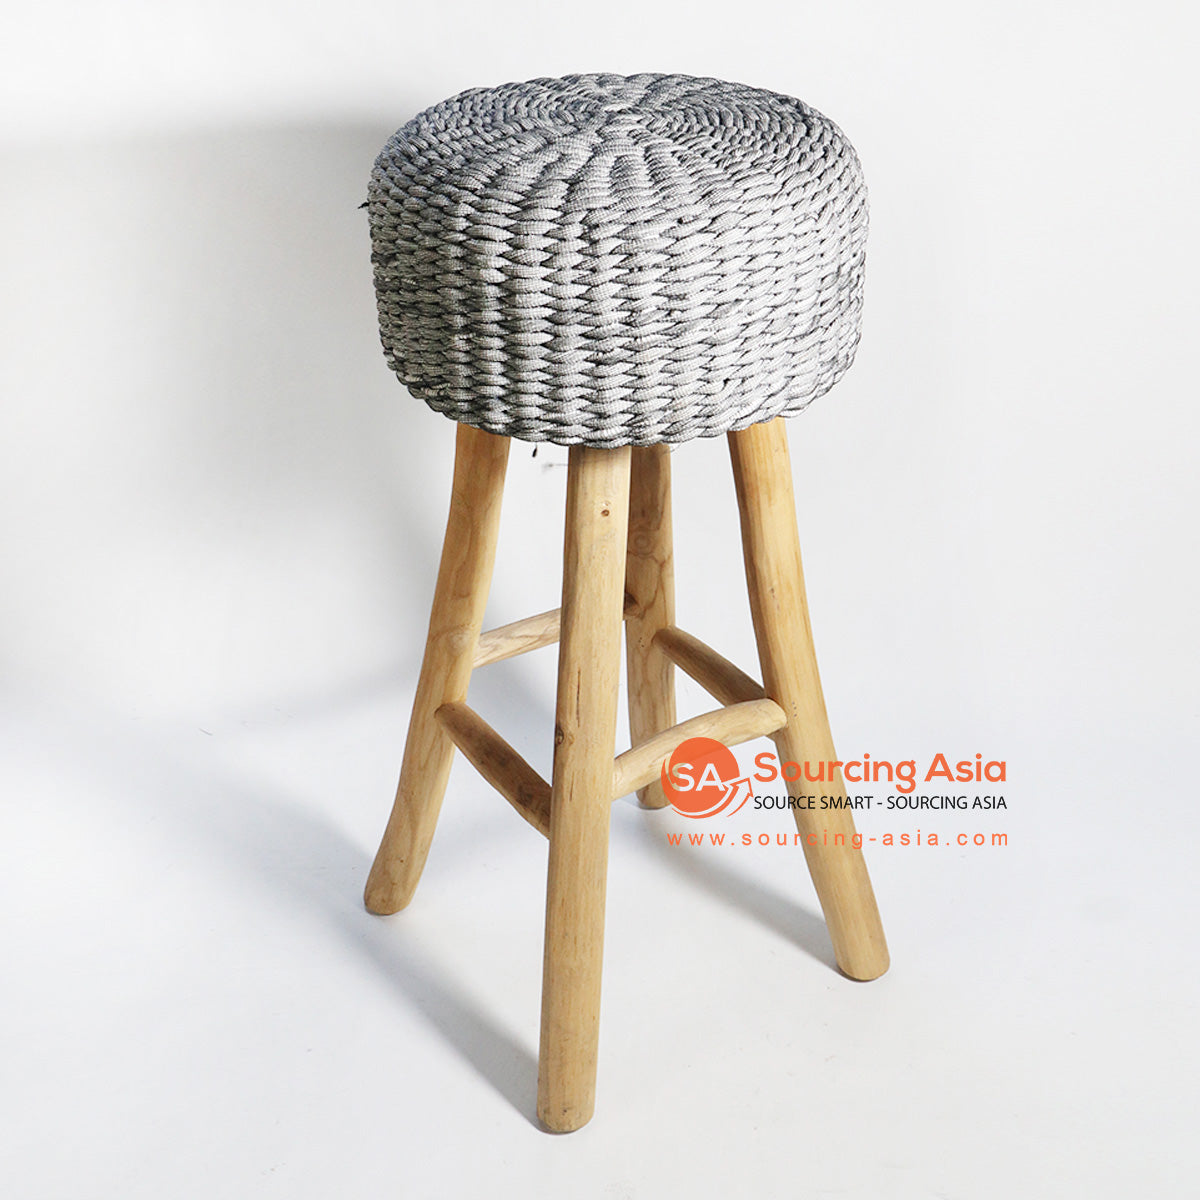 HBSC153 RECYCLED FABRIC BAR STOOL